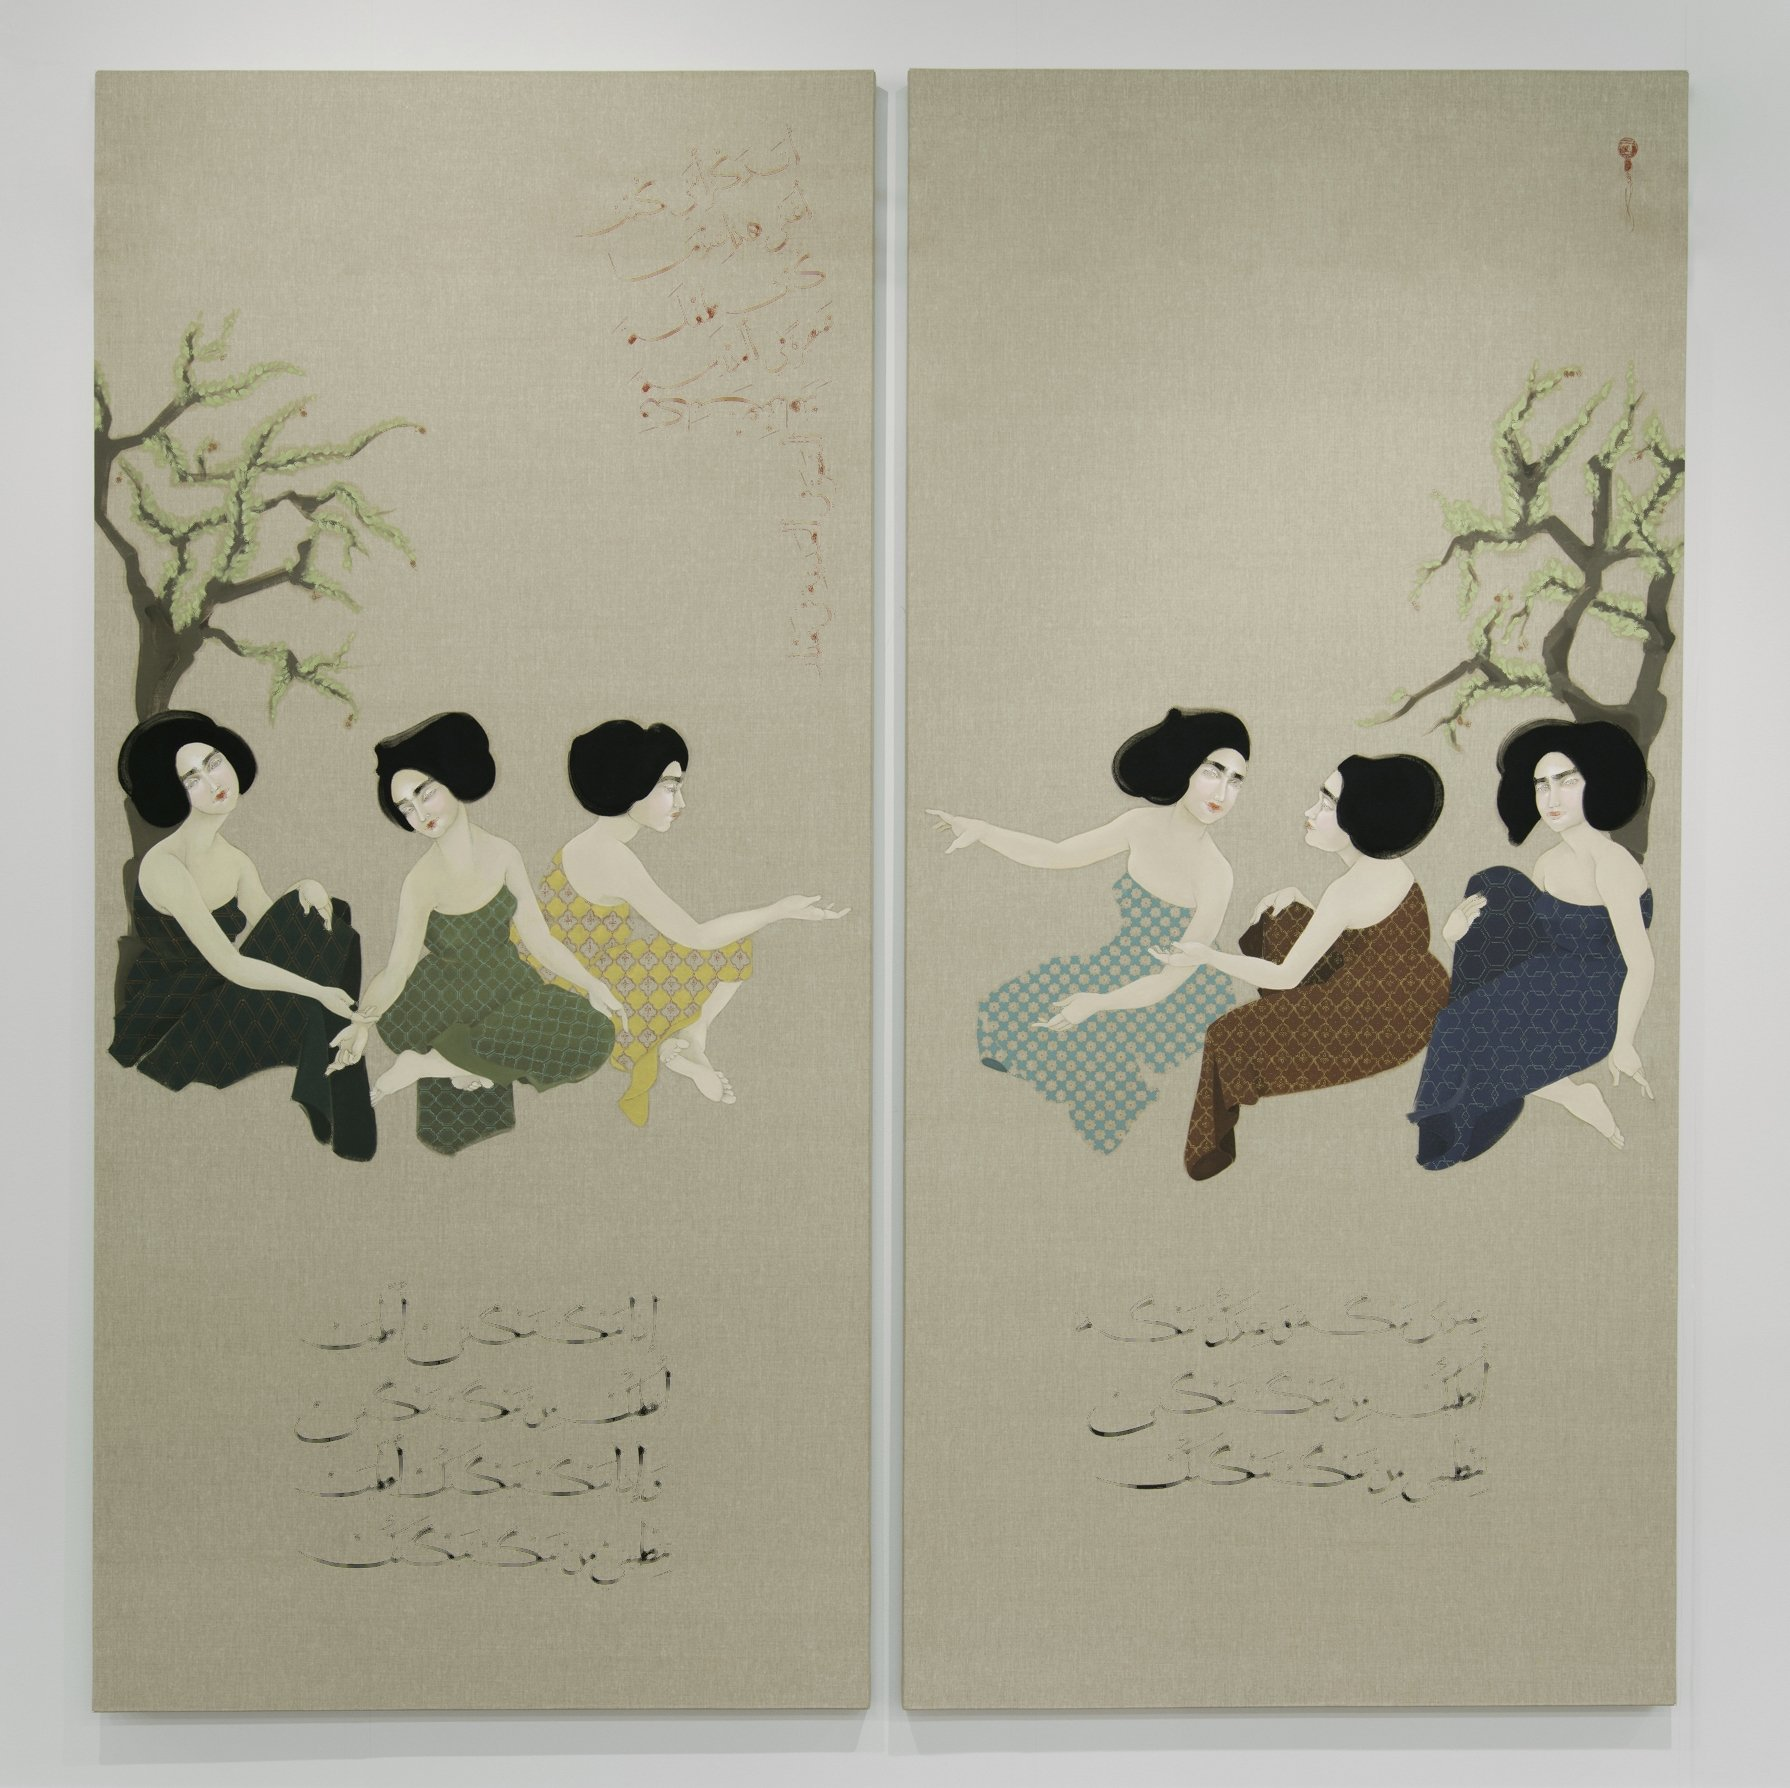 Hayv Kahraman, 'Nabog,' 2014, oil on linen, each panel 292 by 140 centimeters. (PHOTO COURTESY OF PERA MUSEUM)